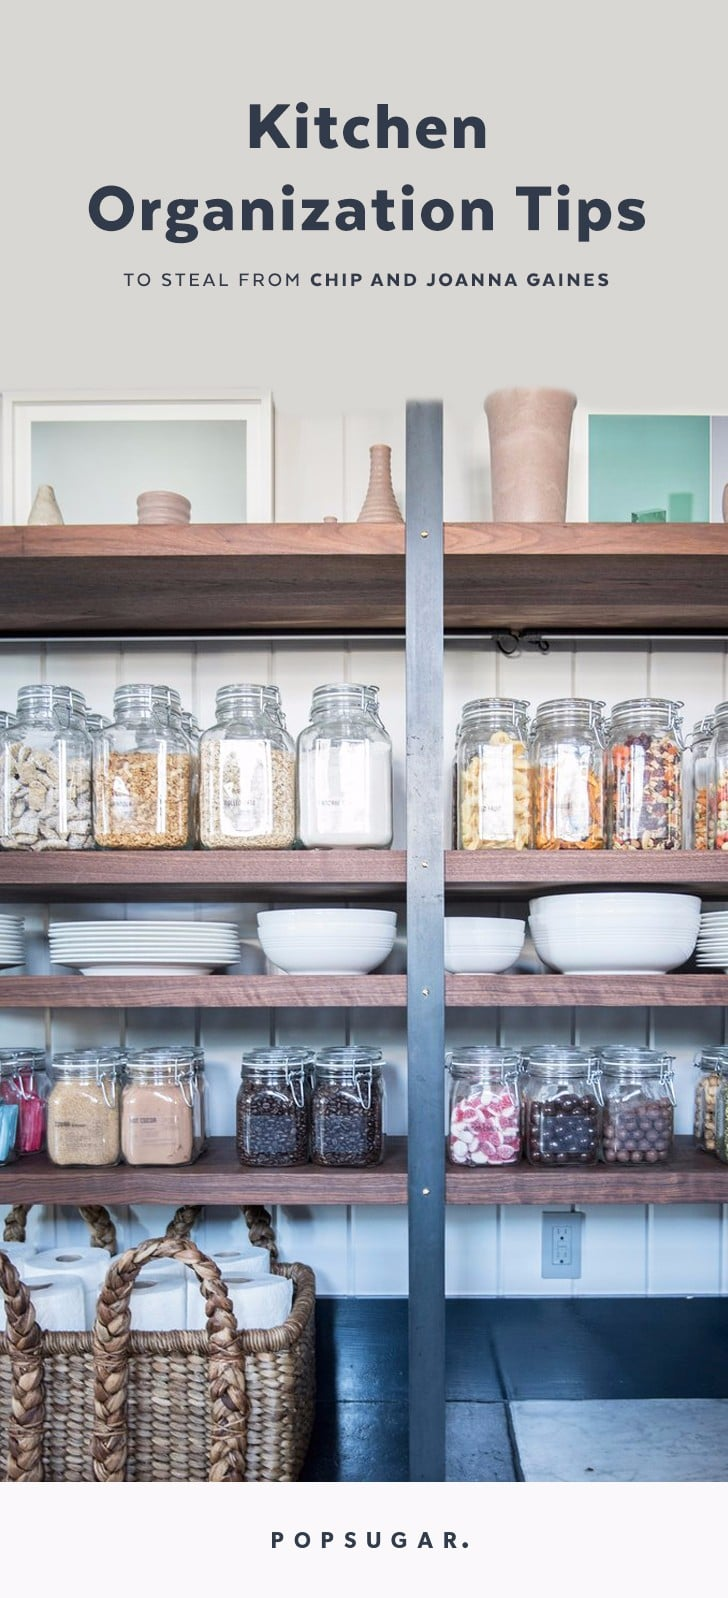 Chip and Joanna Gaines Kitchen Organization Tips